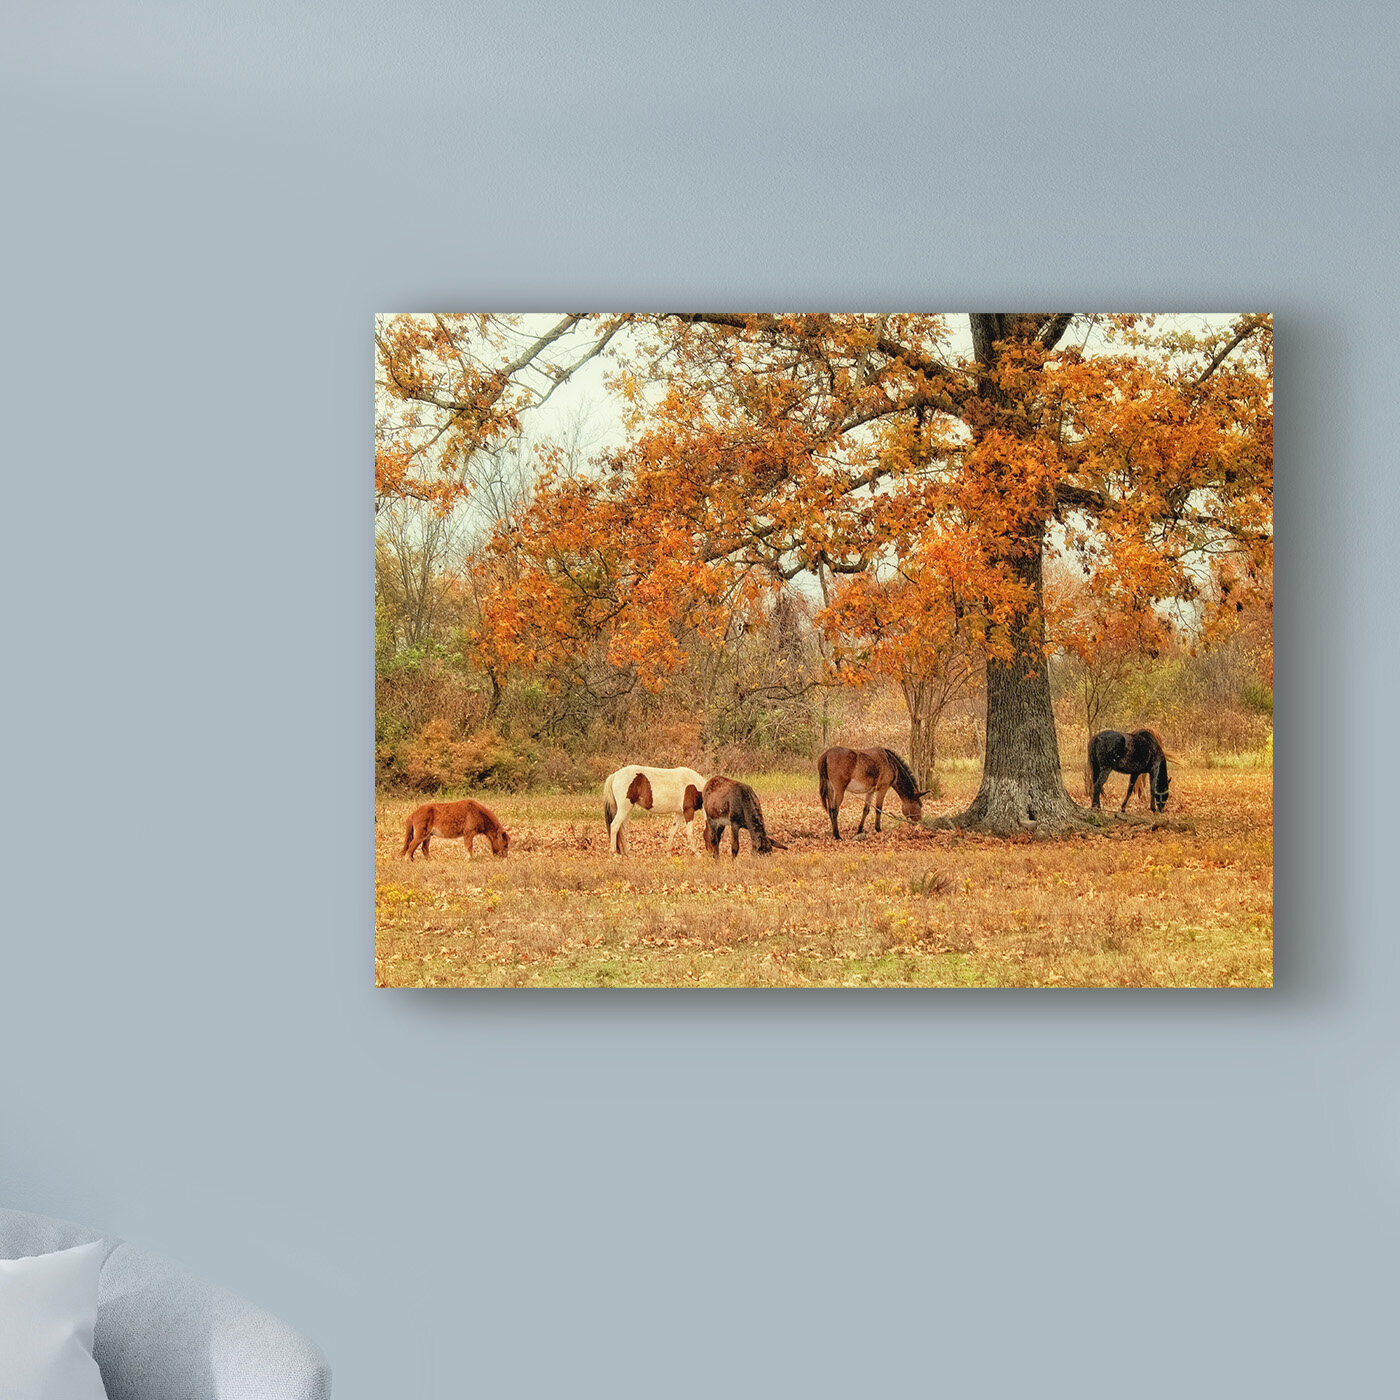 Calmly Grazing Photographic Print On Wrapped Canvas Birch Lane